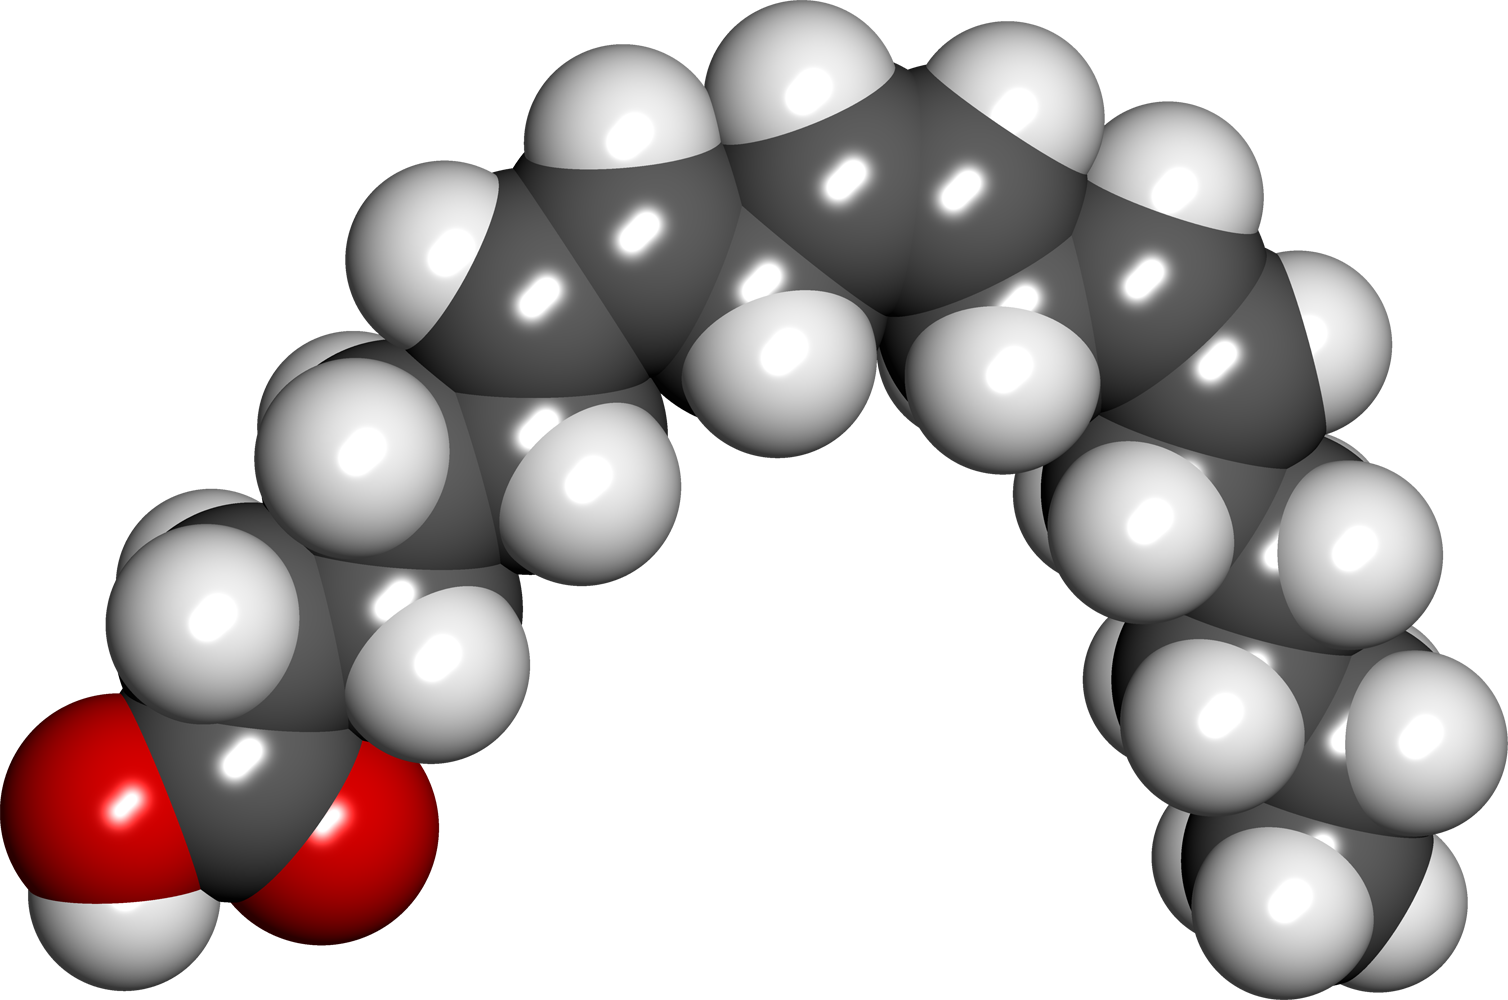 File:Gamma linolenic acid spacefill.png - Wikimedia Commons